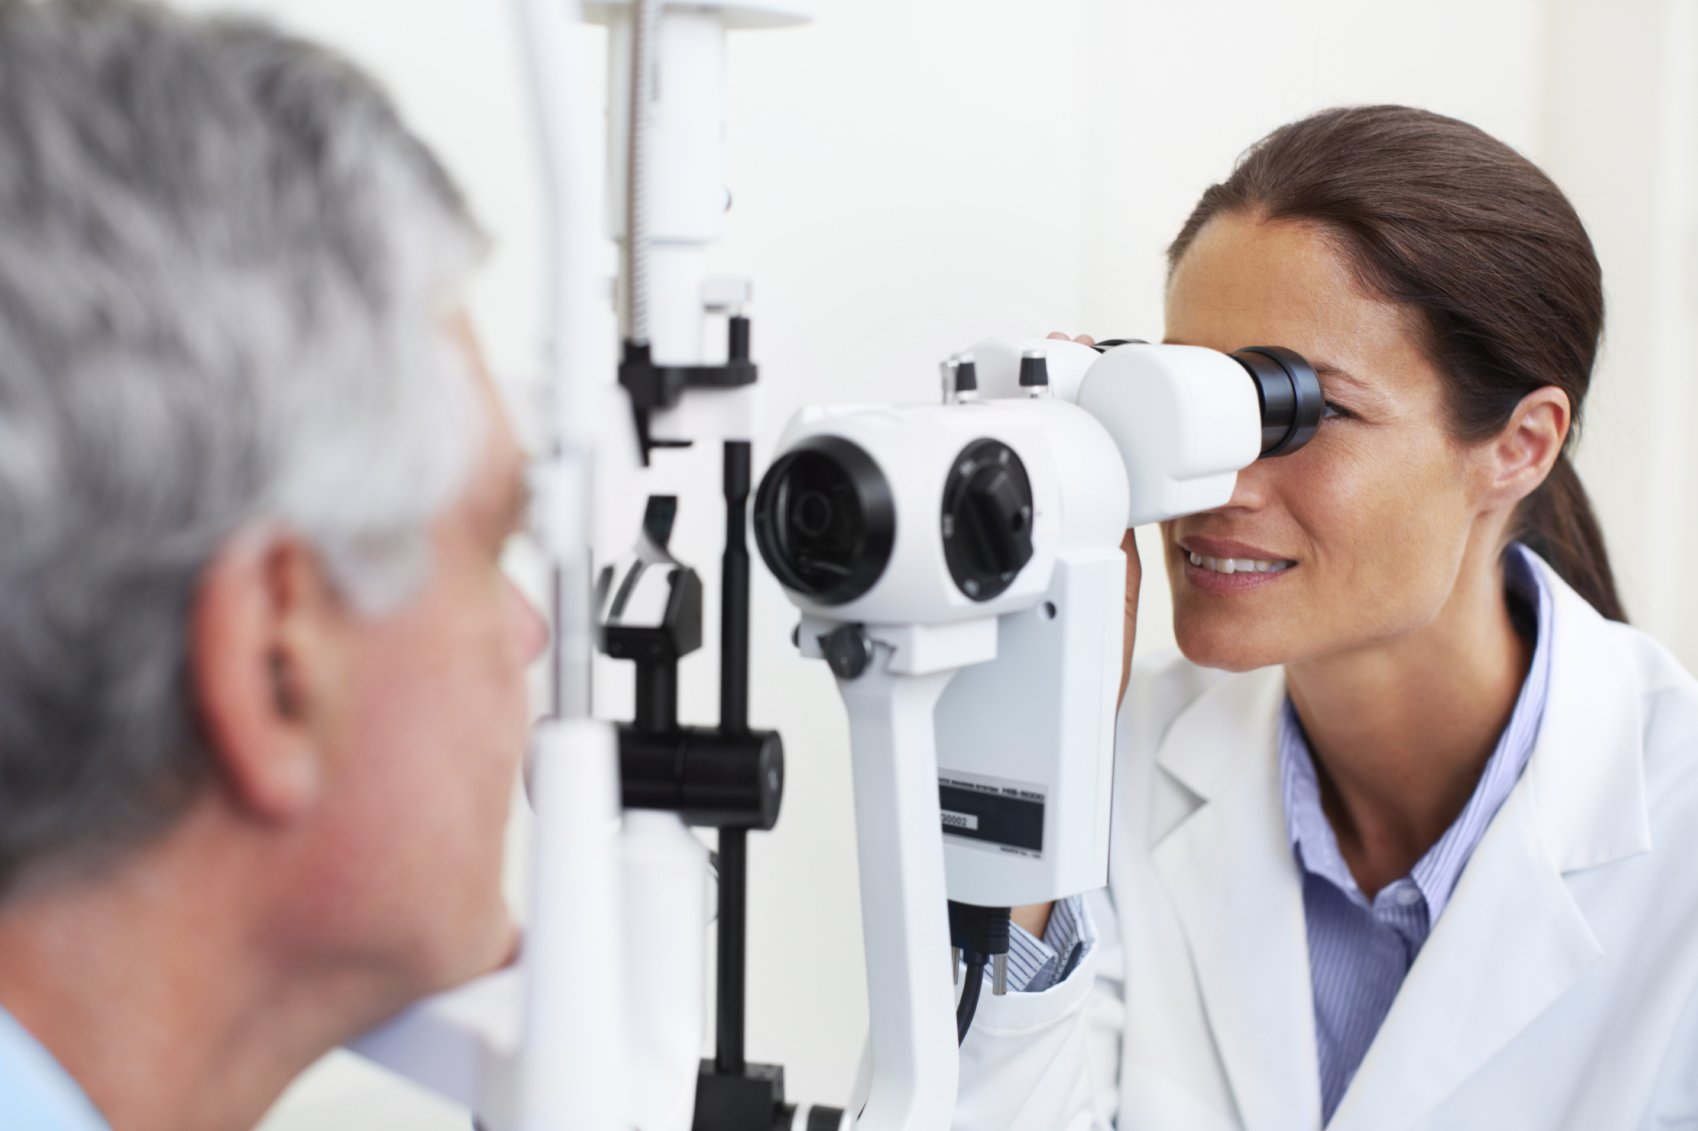 Wat CareConnect Ophthalmologist u biedt